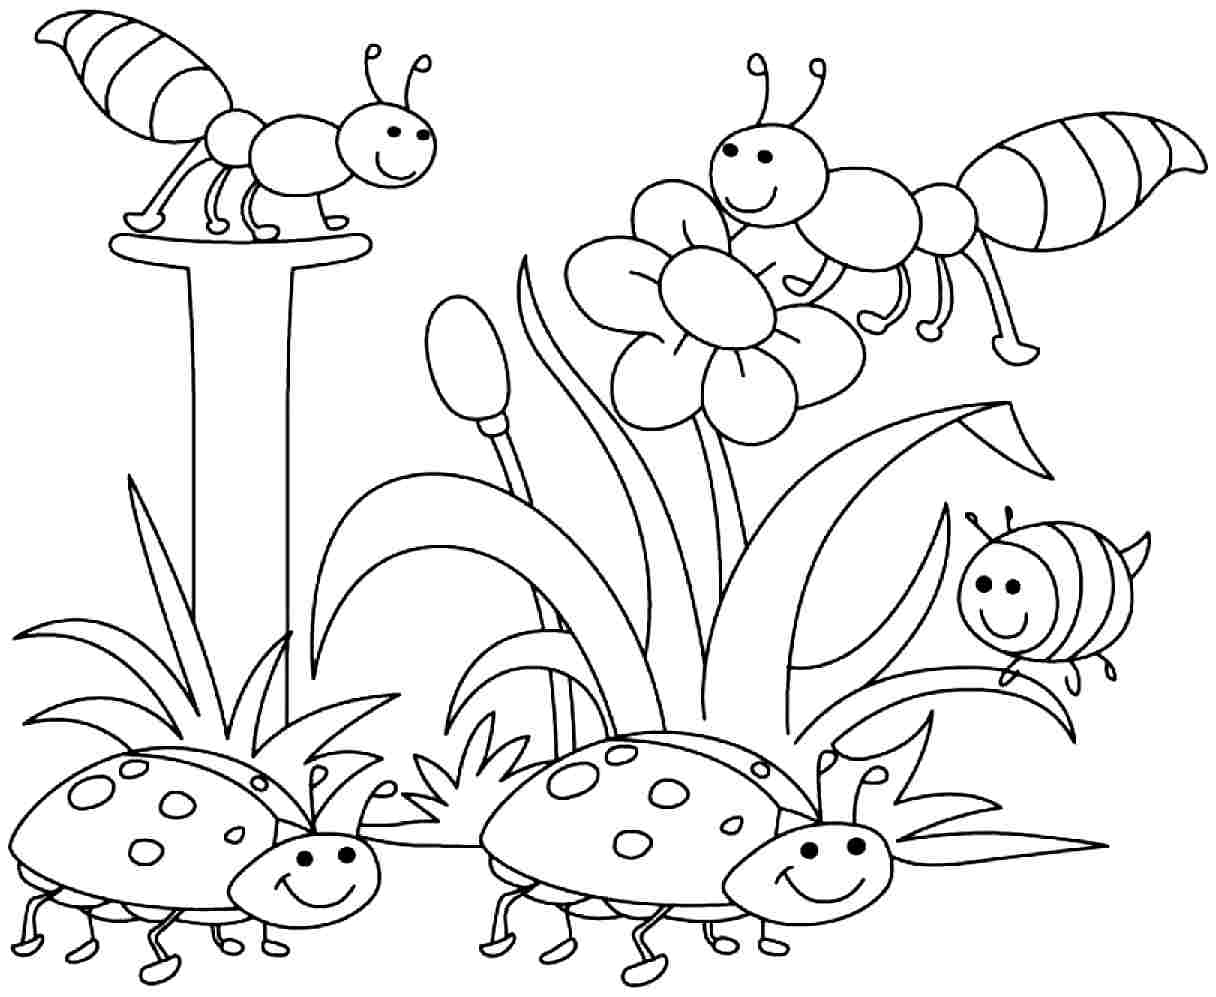 Be Kind Coloring Page At Getdrawings